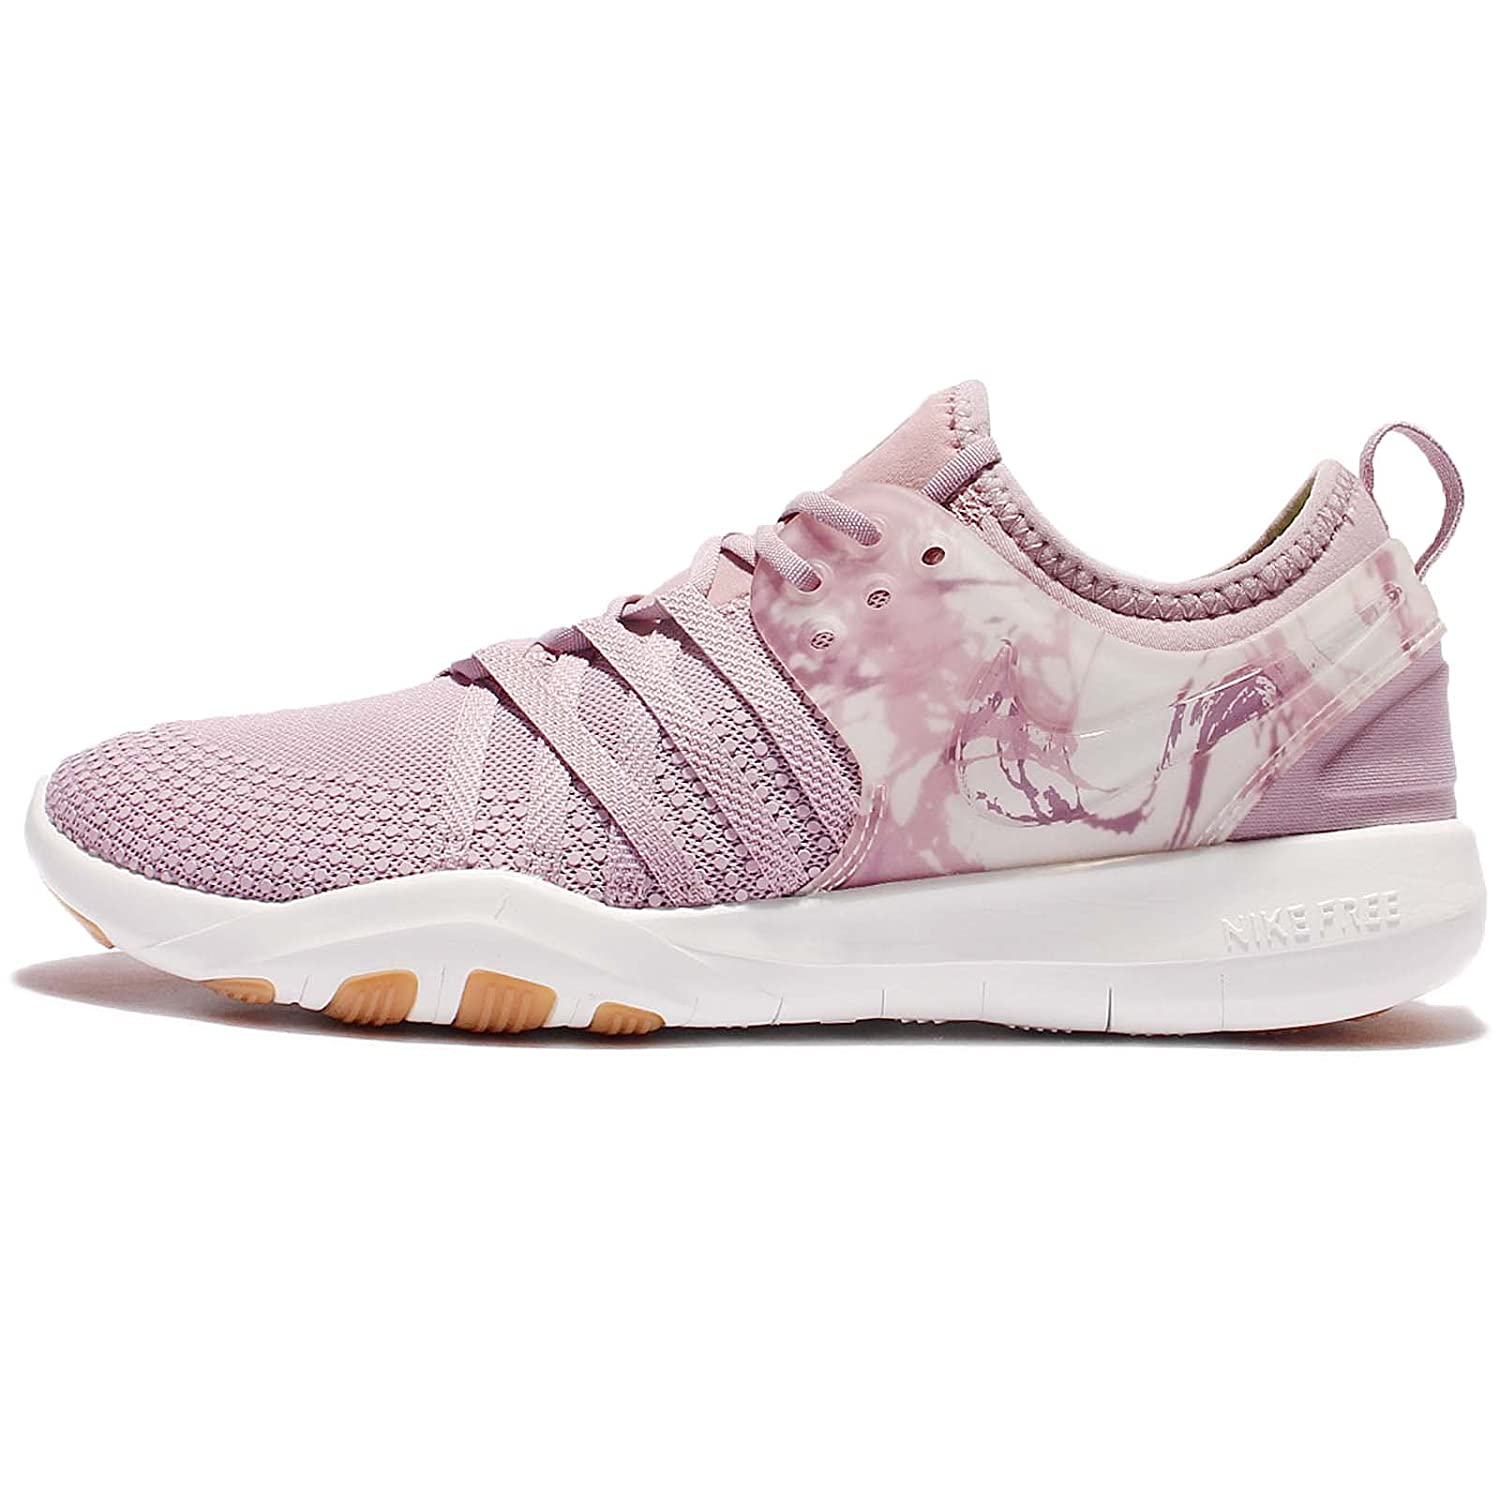 NIKE Free Tr 7 Womens Cross Training Shoes B00K6V246G 6 B(M) US|Plum Fog/Plum Fog-summit White